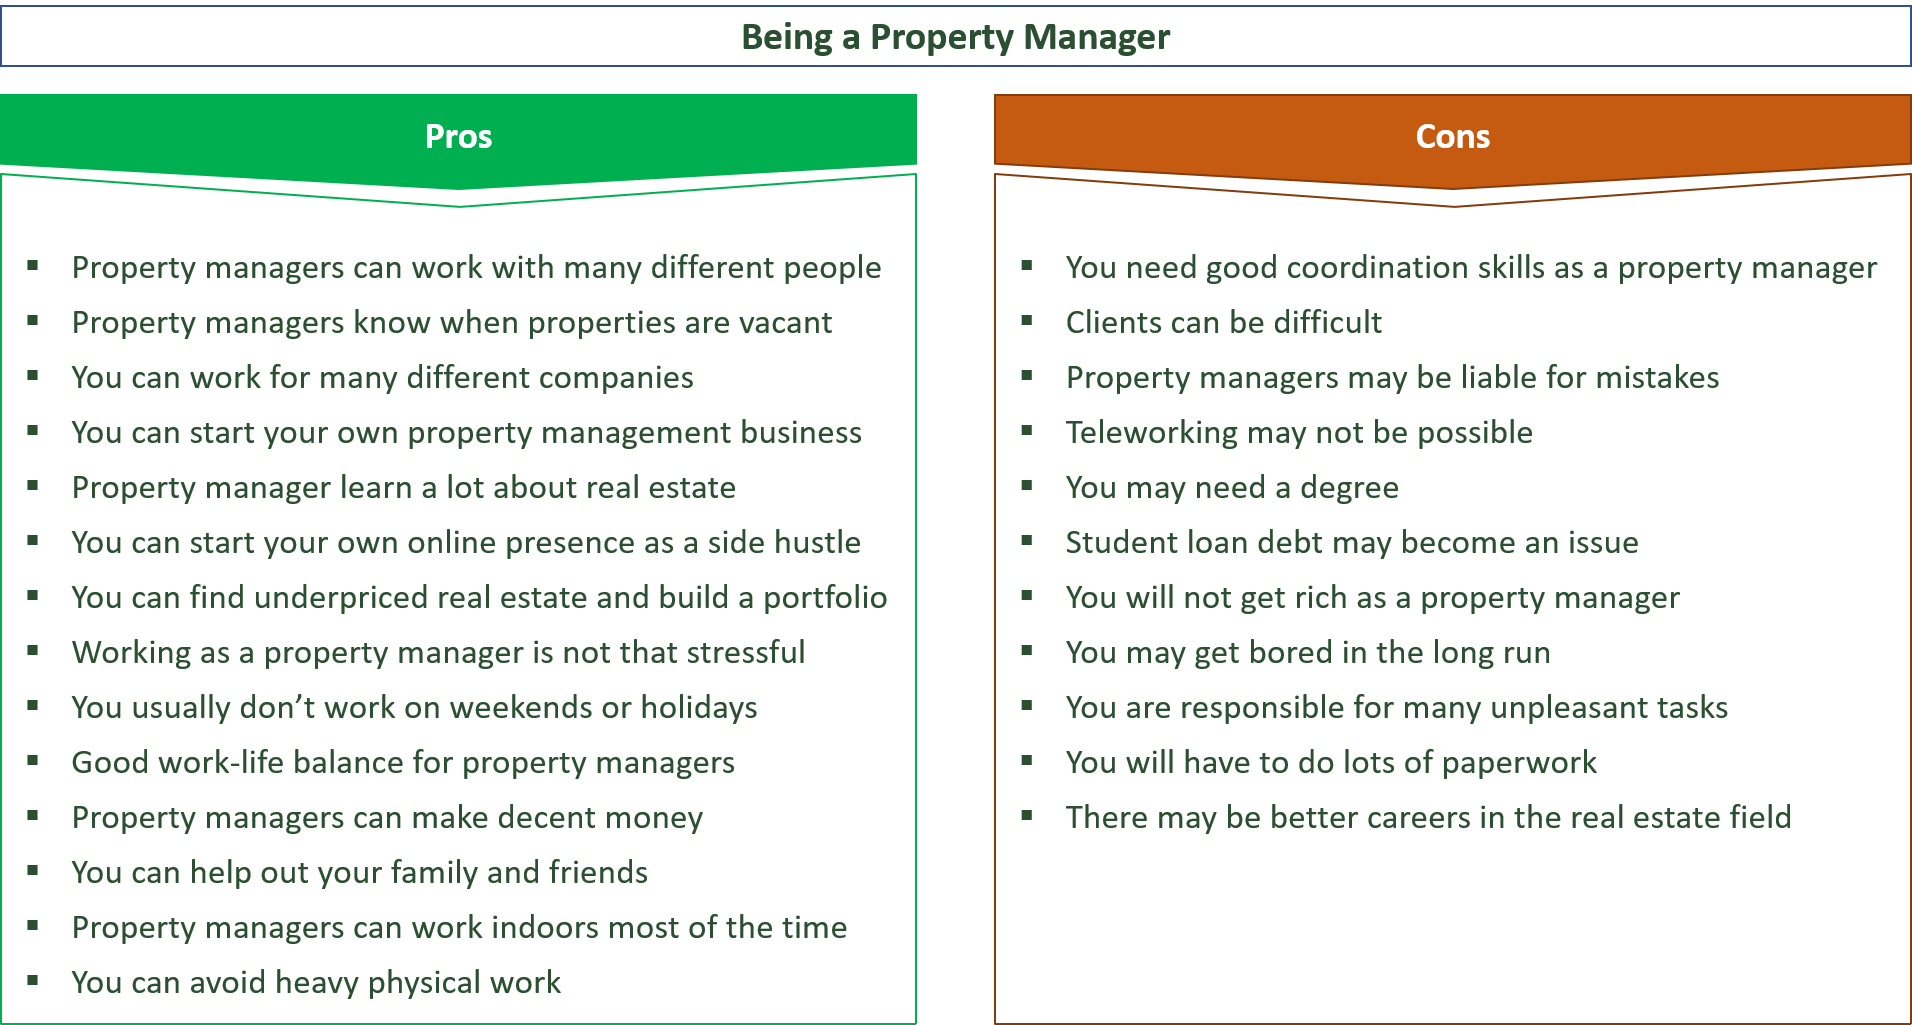 advantages and disadvantages of being a property manager